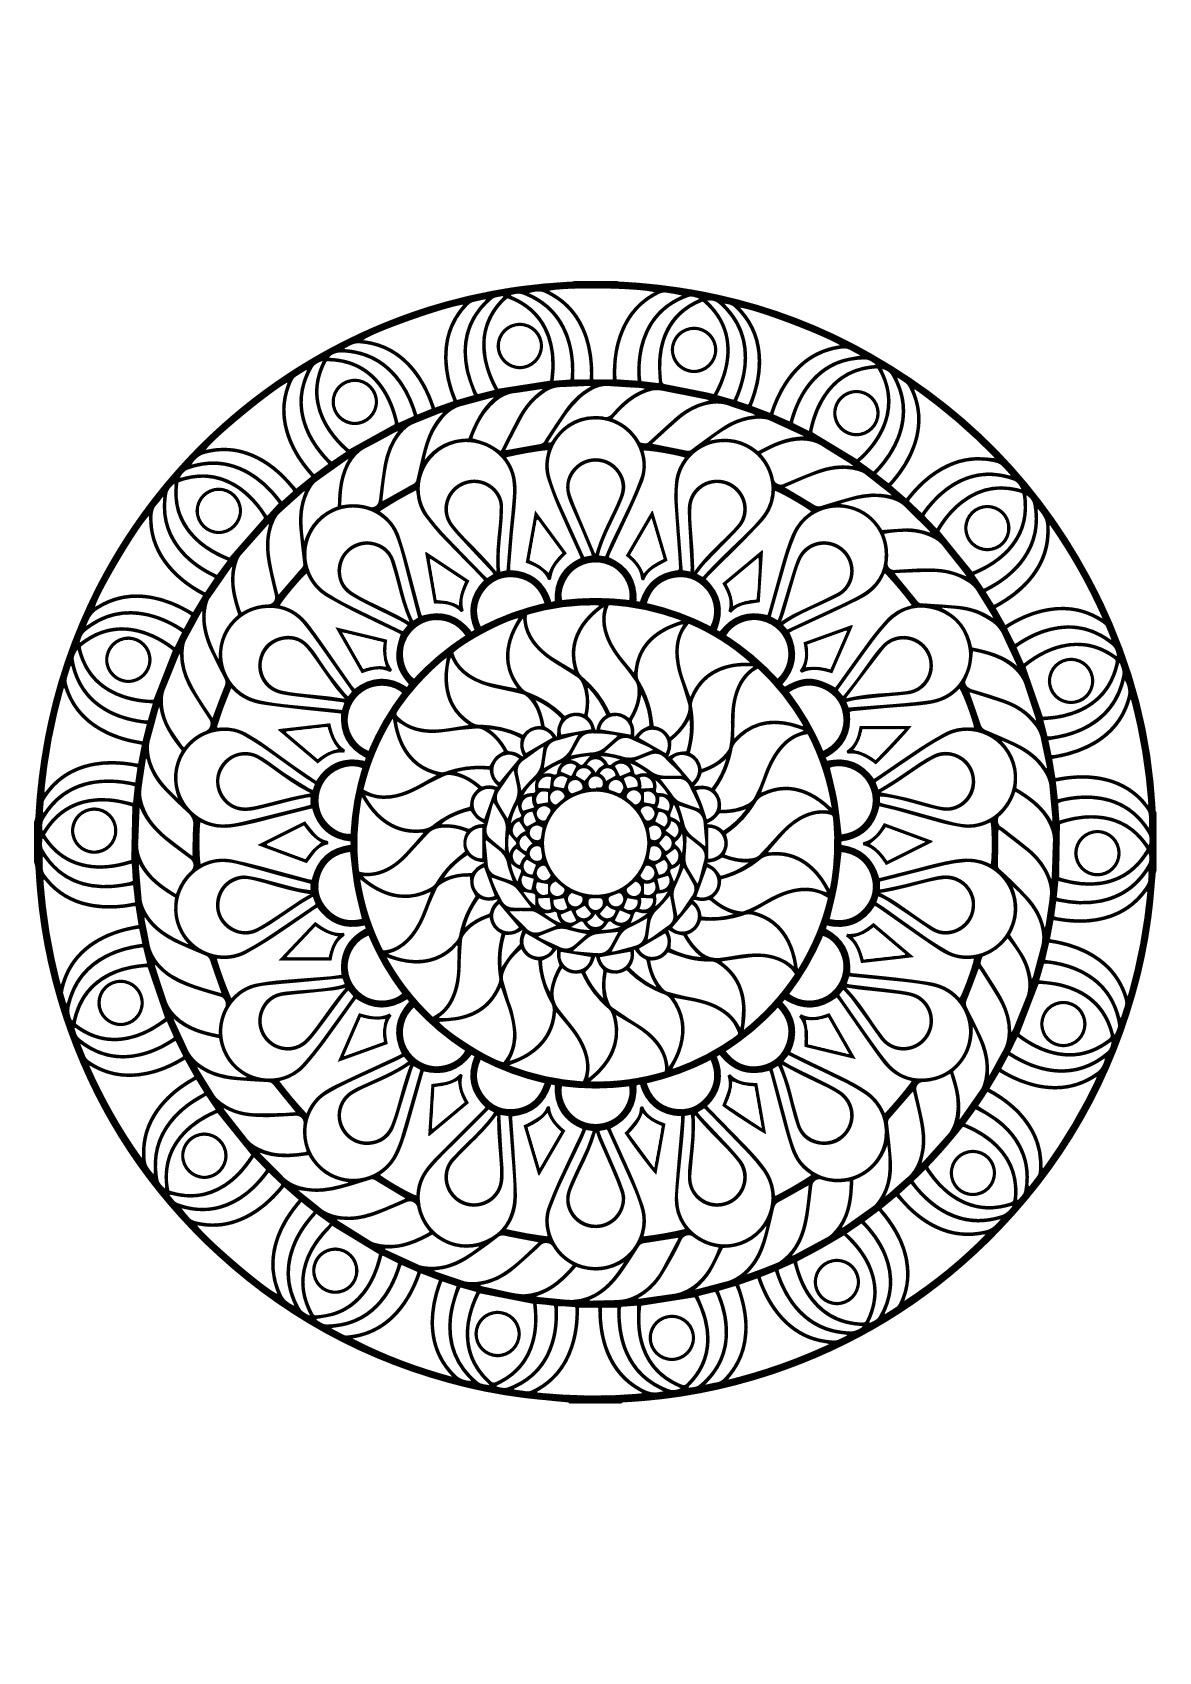 Mandala From Free Coloring Books For Adults 12 Mandalas Coloring Pages For Kids To Print Color